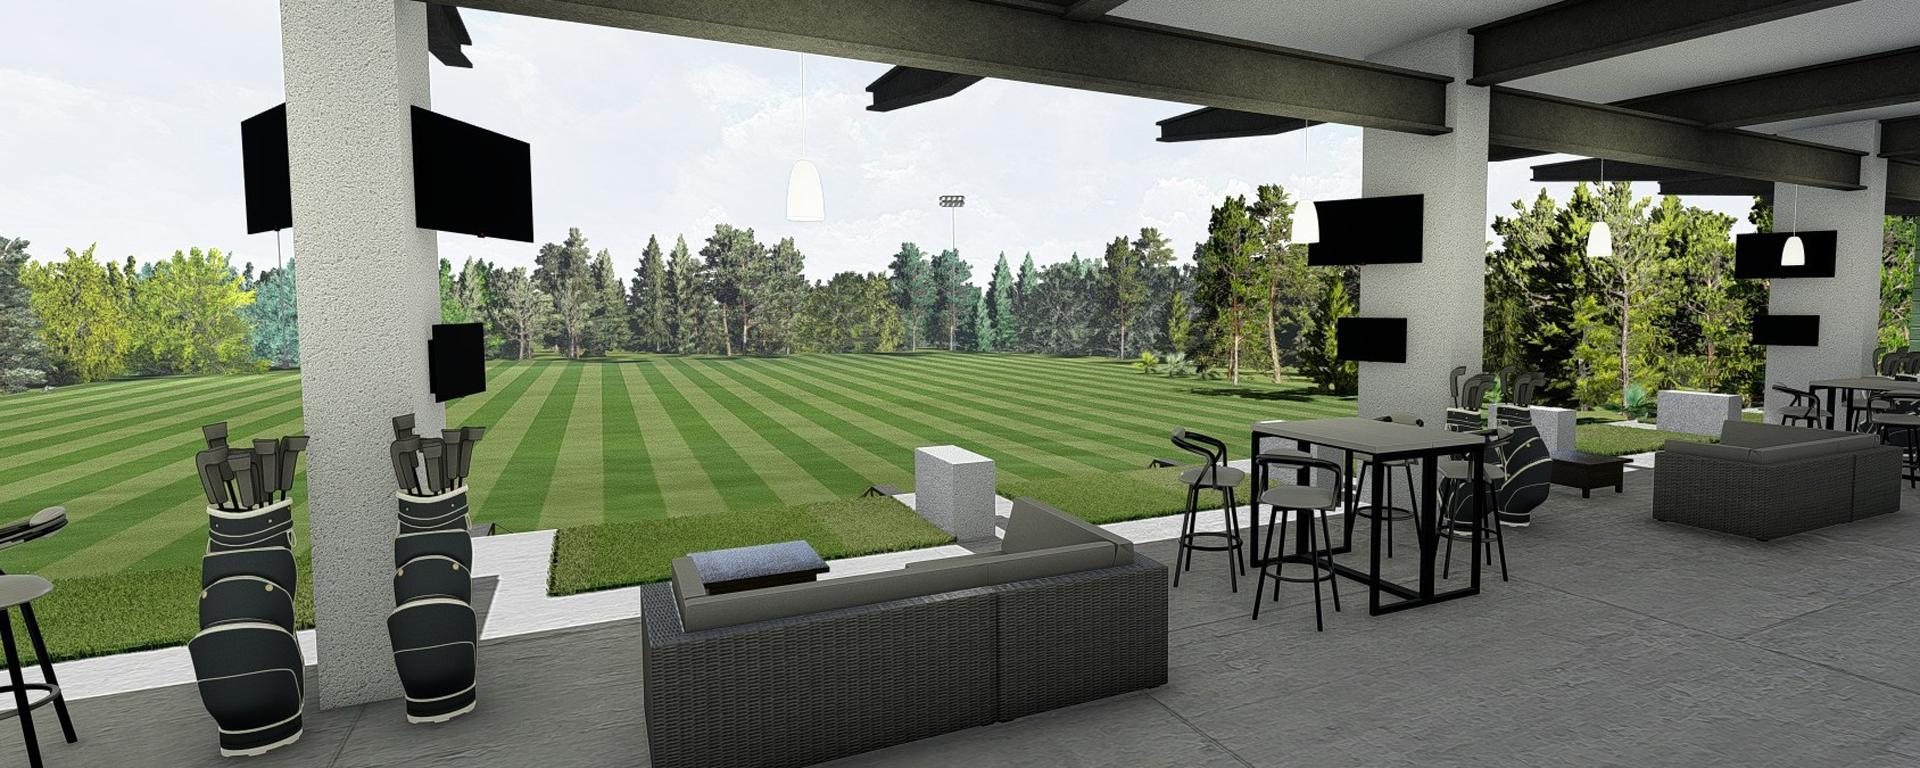 Rendering of inside of the hitting bays